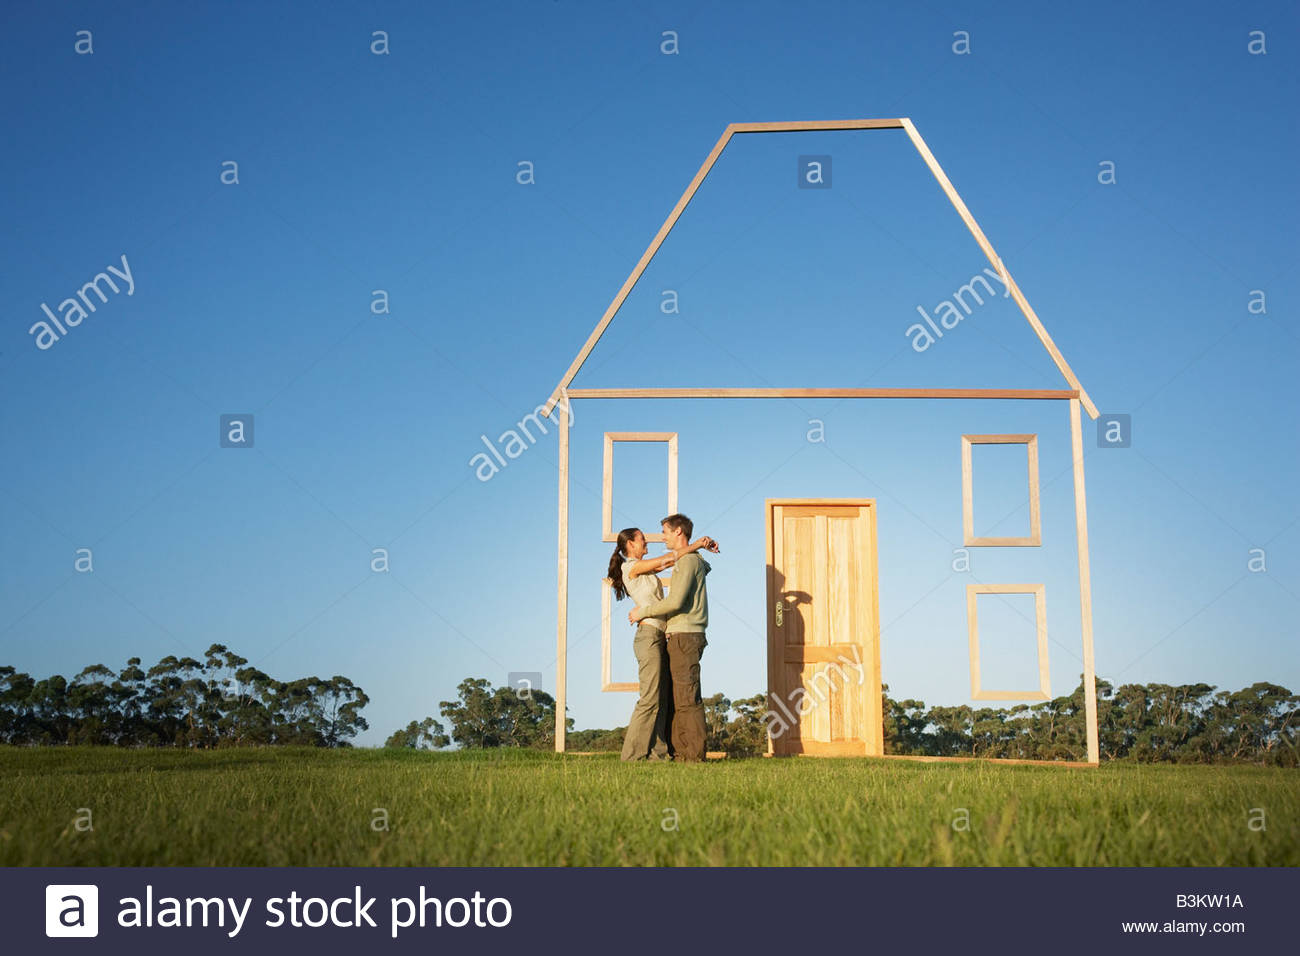 Couple hugging next to vertical house outline - Stock Image